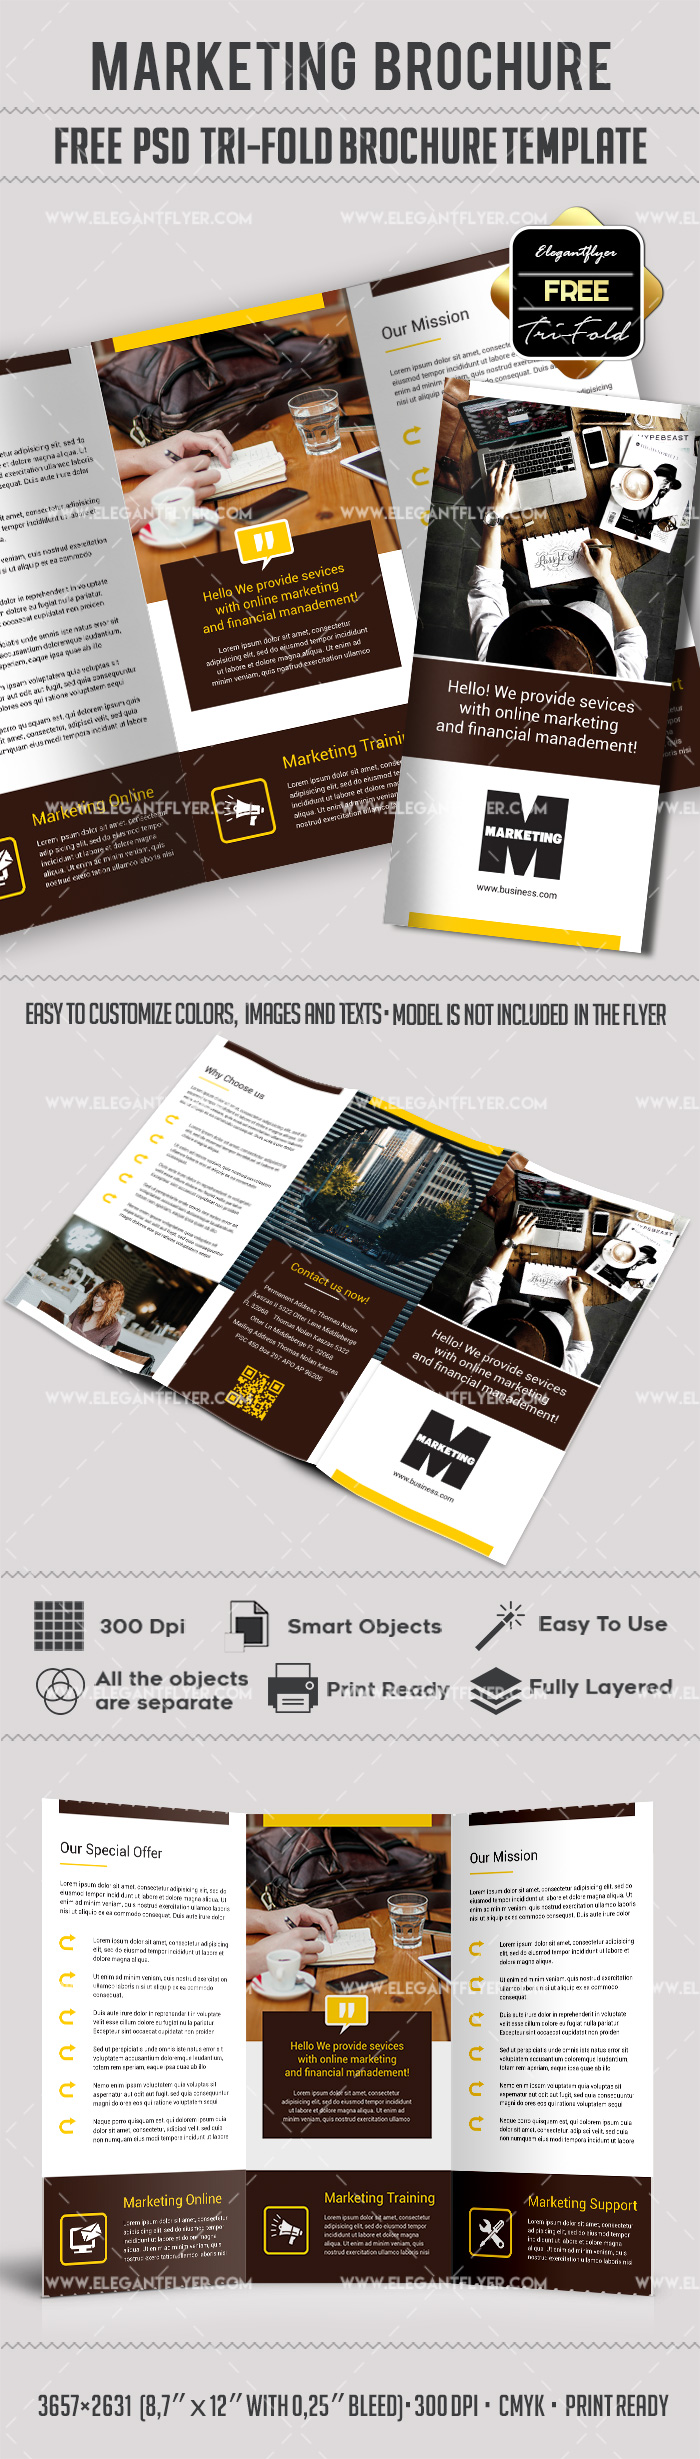 Marketing free tri fold psd brochure template by for Free flyer brochure templates